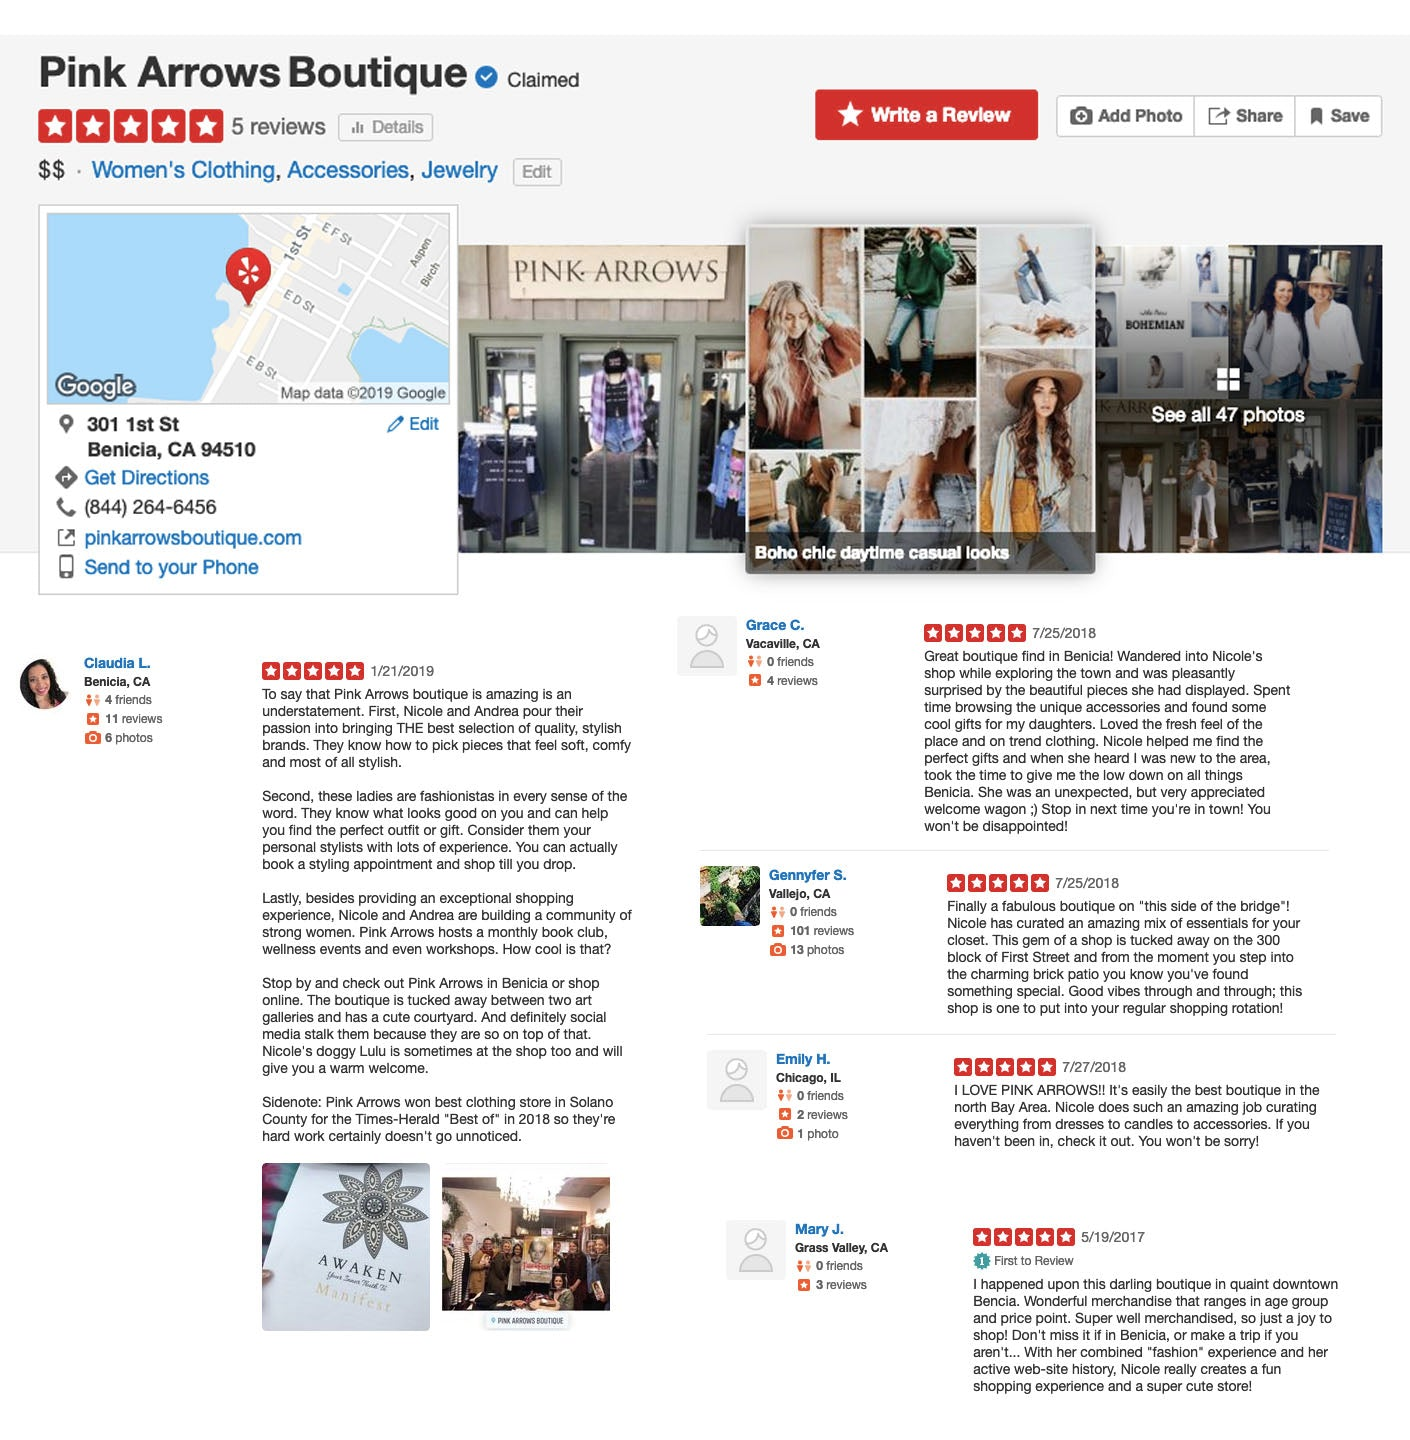 Pink Arrows Reviews on Yelp